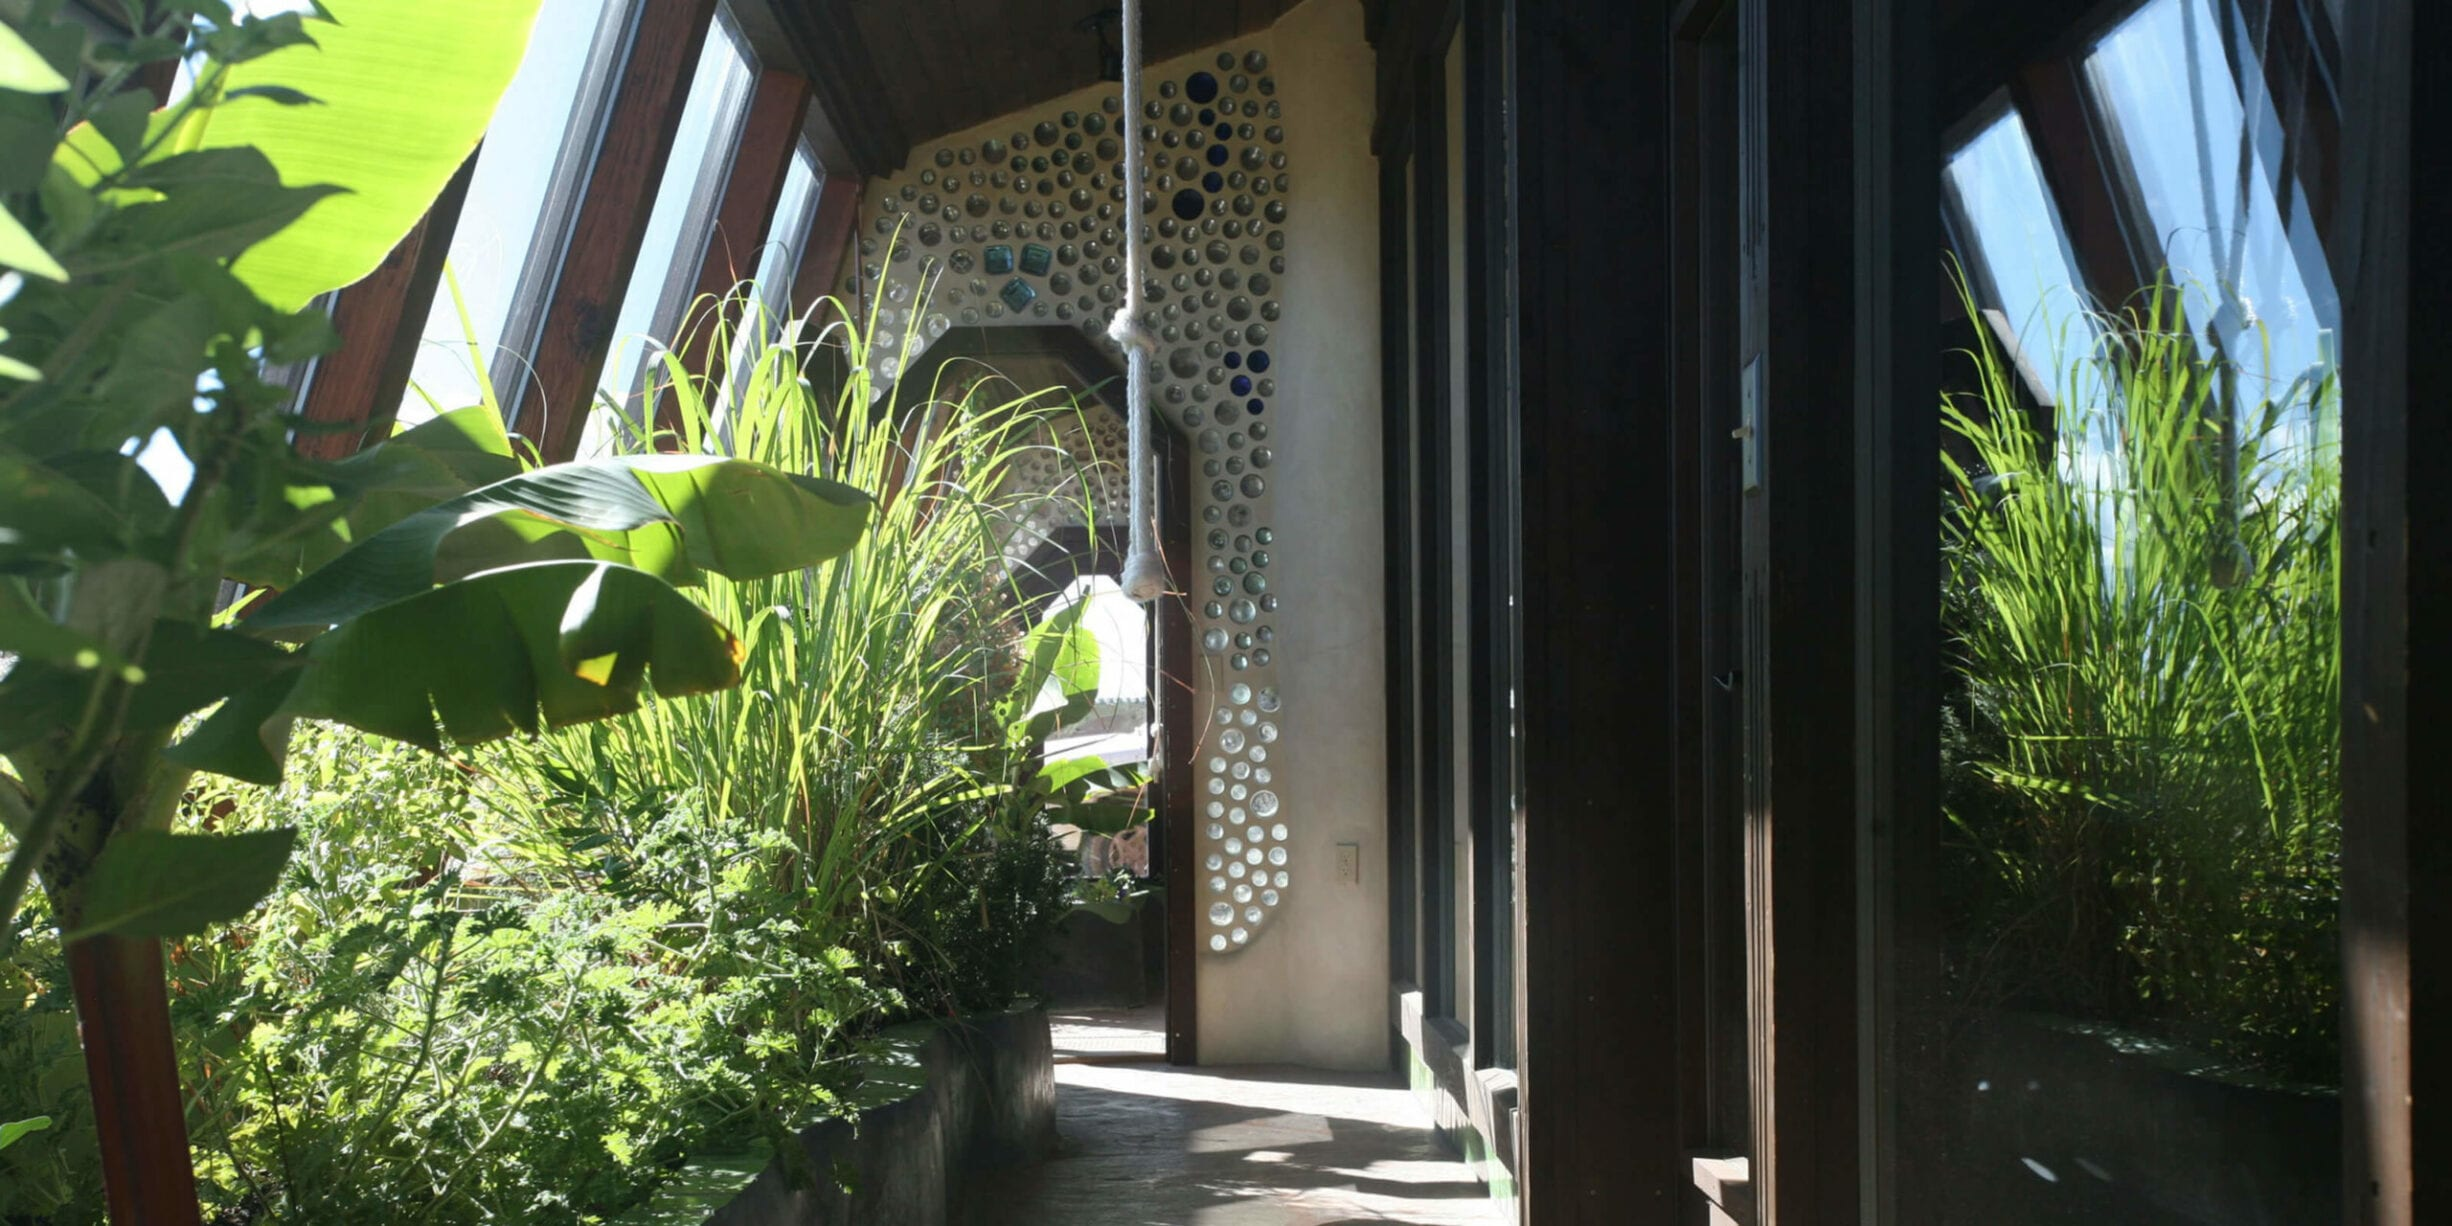 earthship exterior with plants